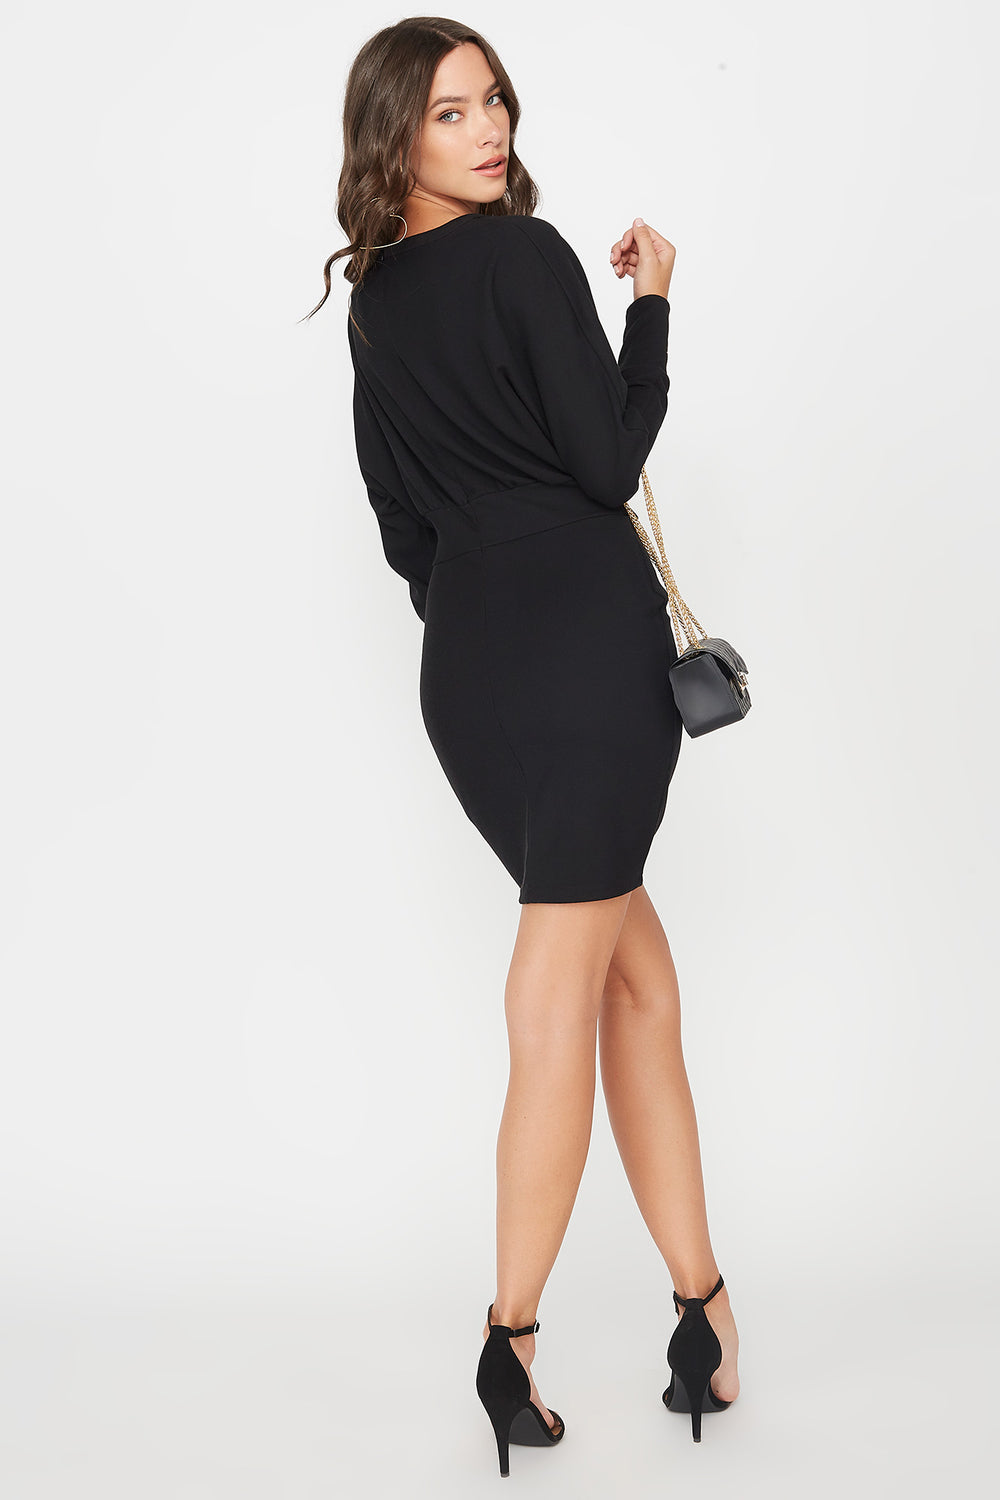 Scoop Neck Self Tie Dolman Long Sleeve Dress Black